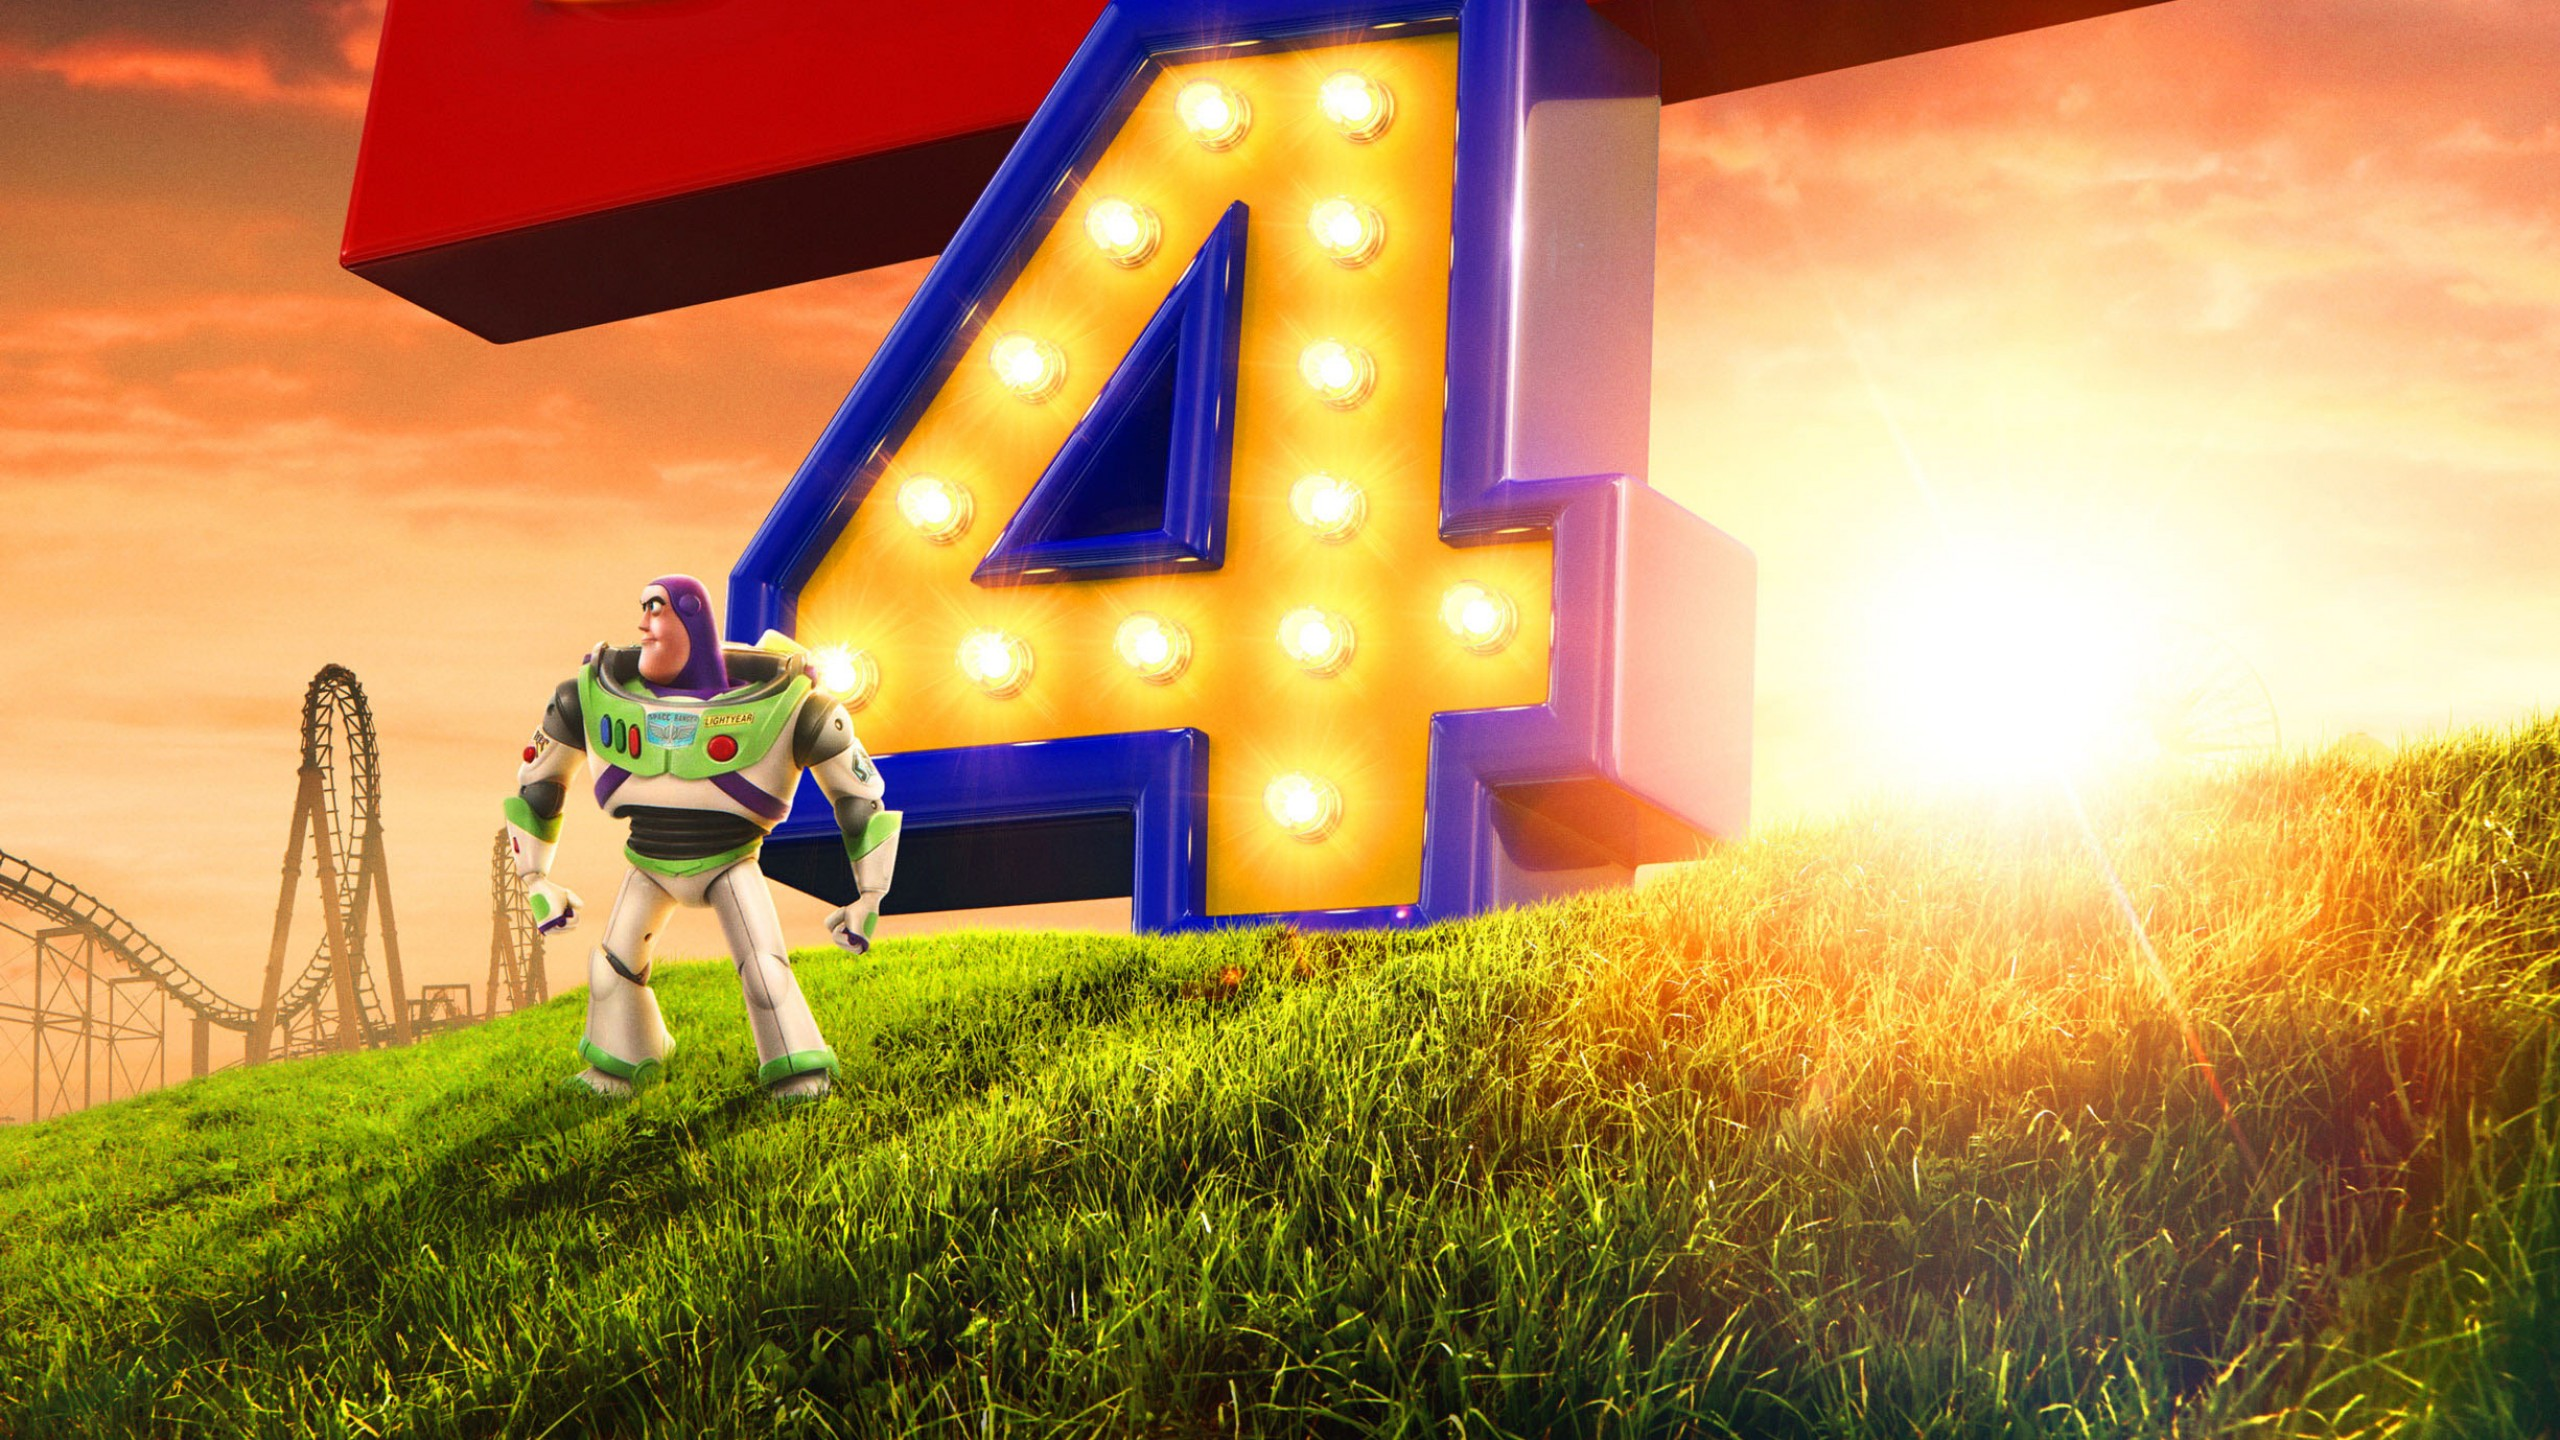 Wallpaper Toy Story 4 Poster Hd Movies 21116 Page 119